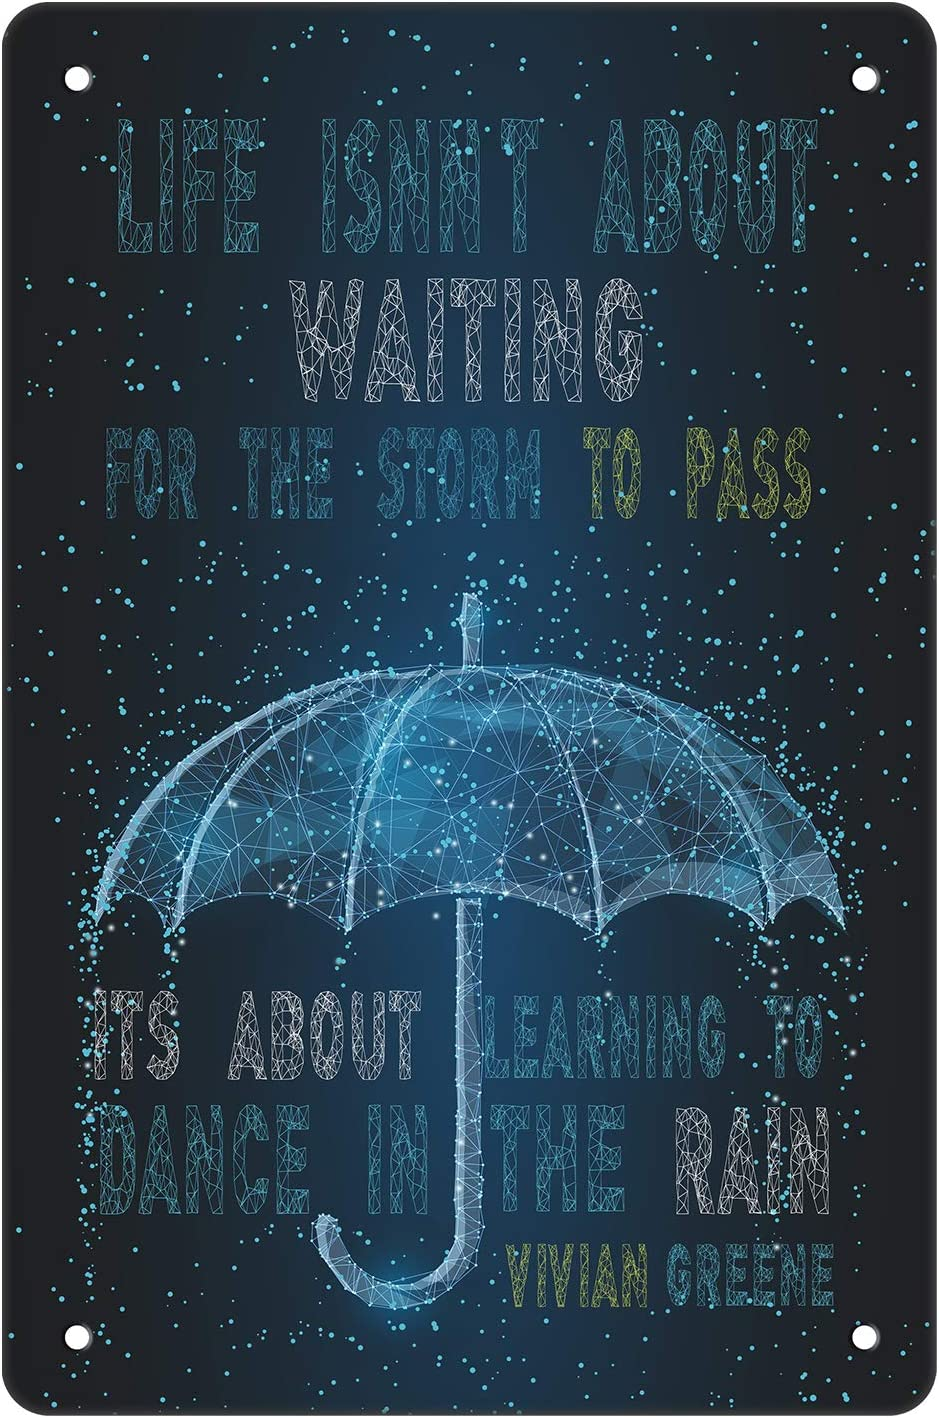 Crapopo Wall Decor Picture-'Life Isn't About Waiting The Storm to Pass',Art Wall Picture Shiny Umbrella Poster Painting for Cafe Bar Bedroom Living Room,8x12inch Decorative Tin Sign